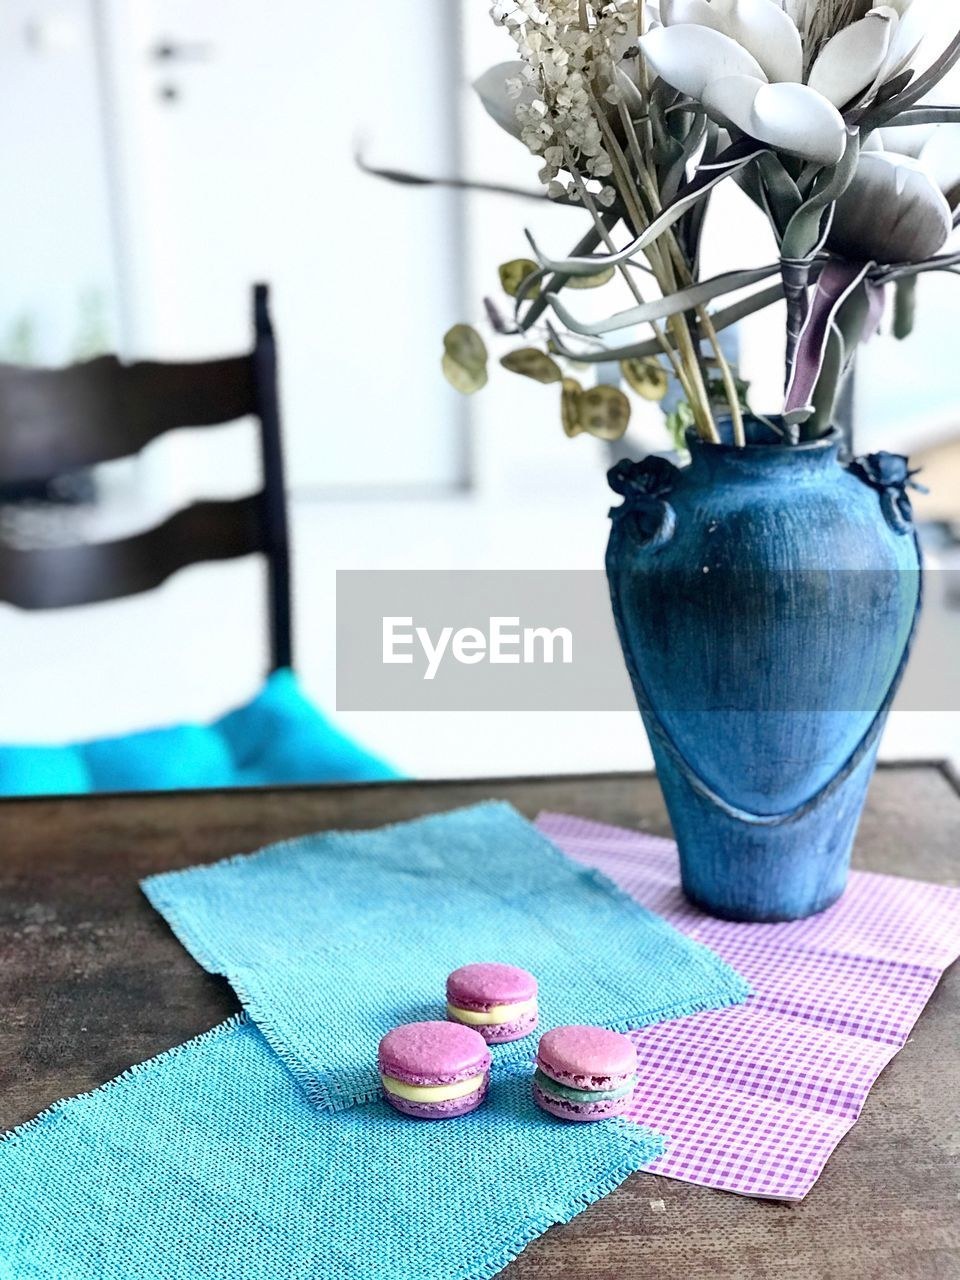 table, indoors, no people, close-up, focus on foreground, still life, plant, blue, flower, textile, flowering plant, freshness, day, nature, vase, container, selective focus, wood - material